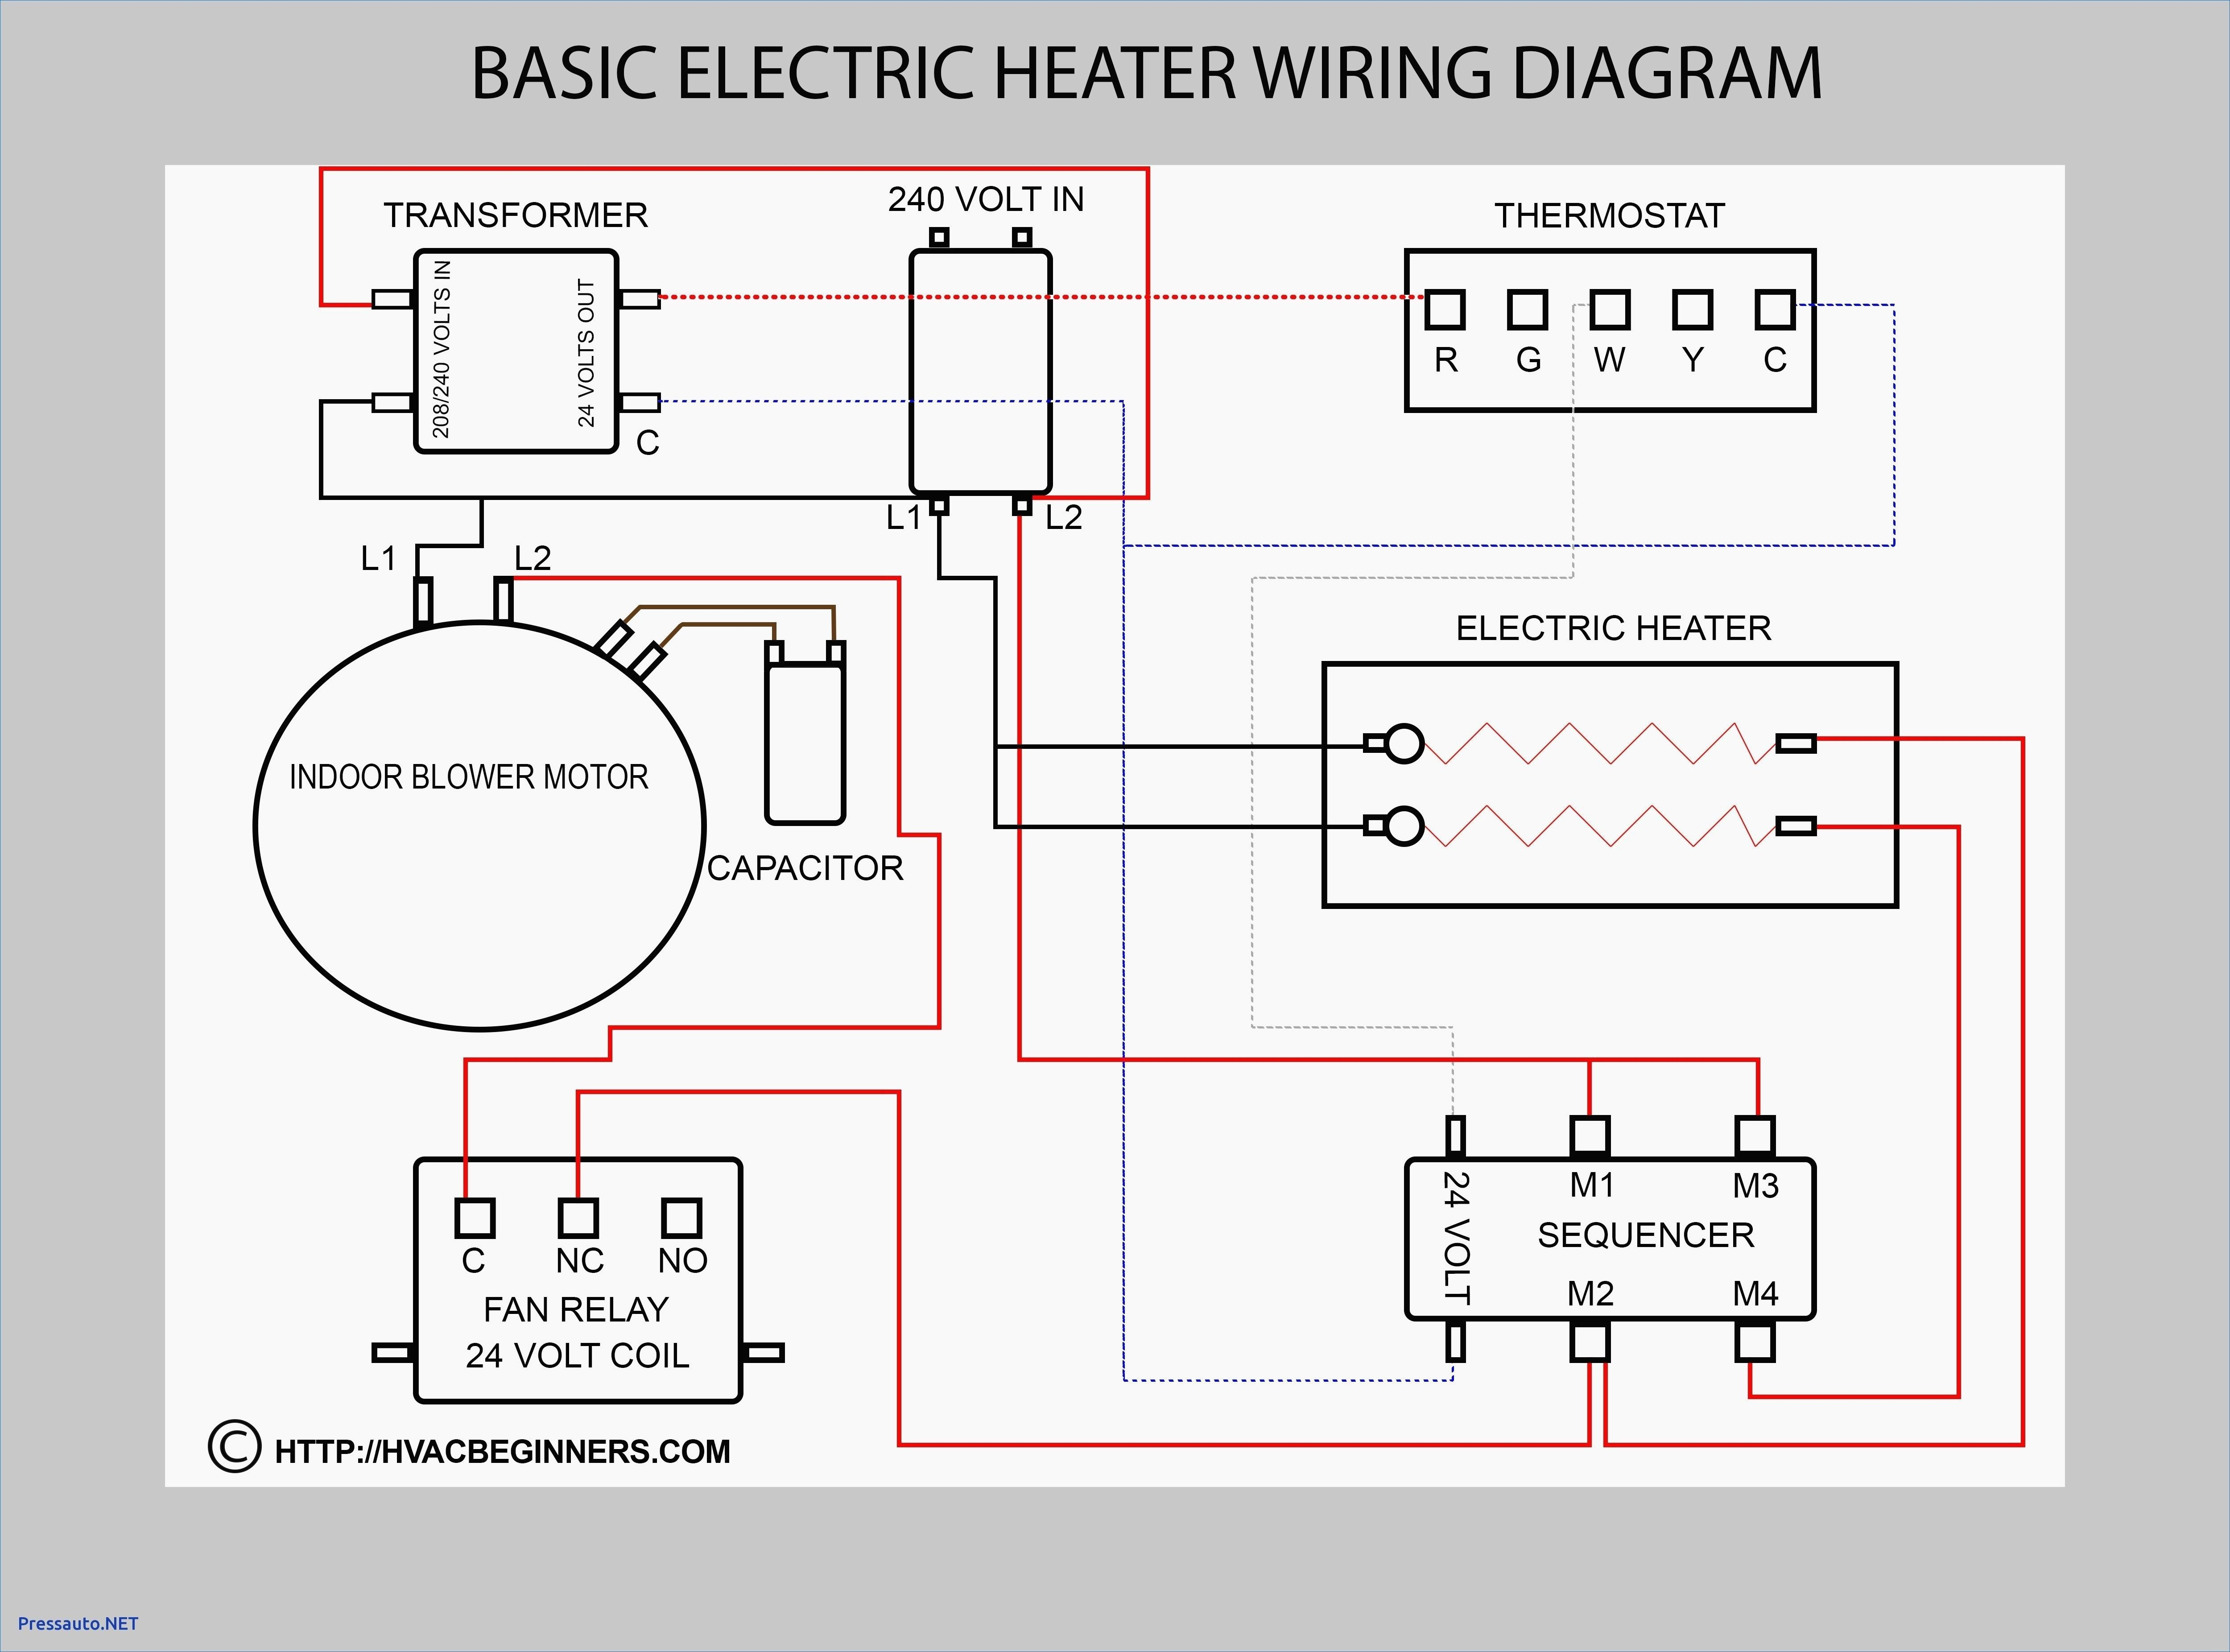 White Rogers Thermostat Wiring Diagram Best Of In 2020 Basic Electrical Wiring Thermostat Wiring Electrical Wiring Diagram